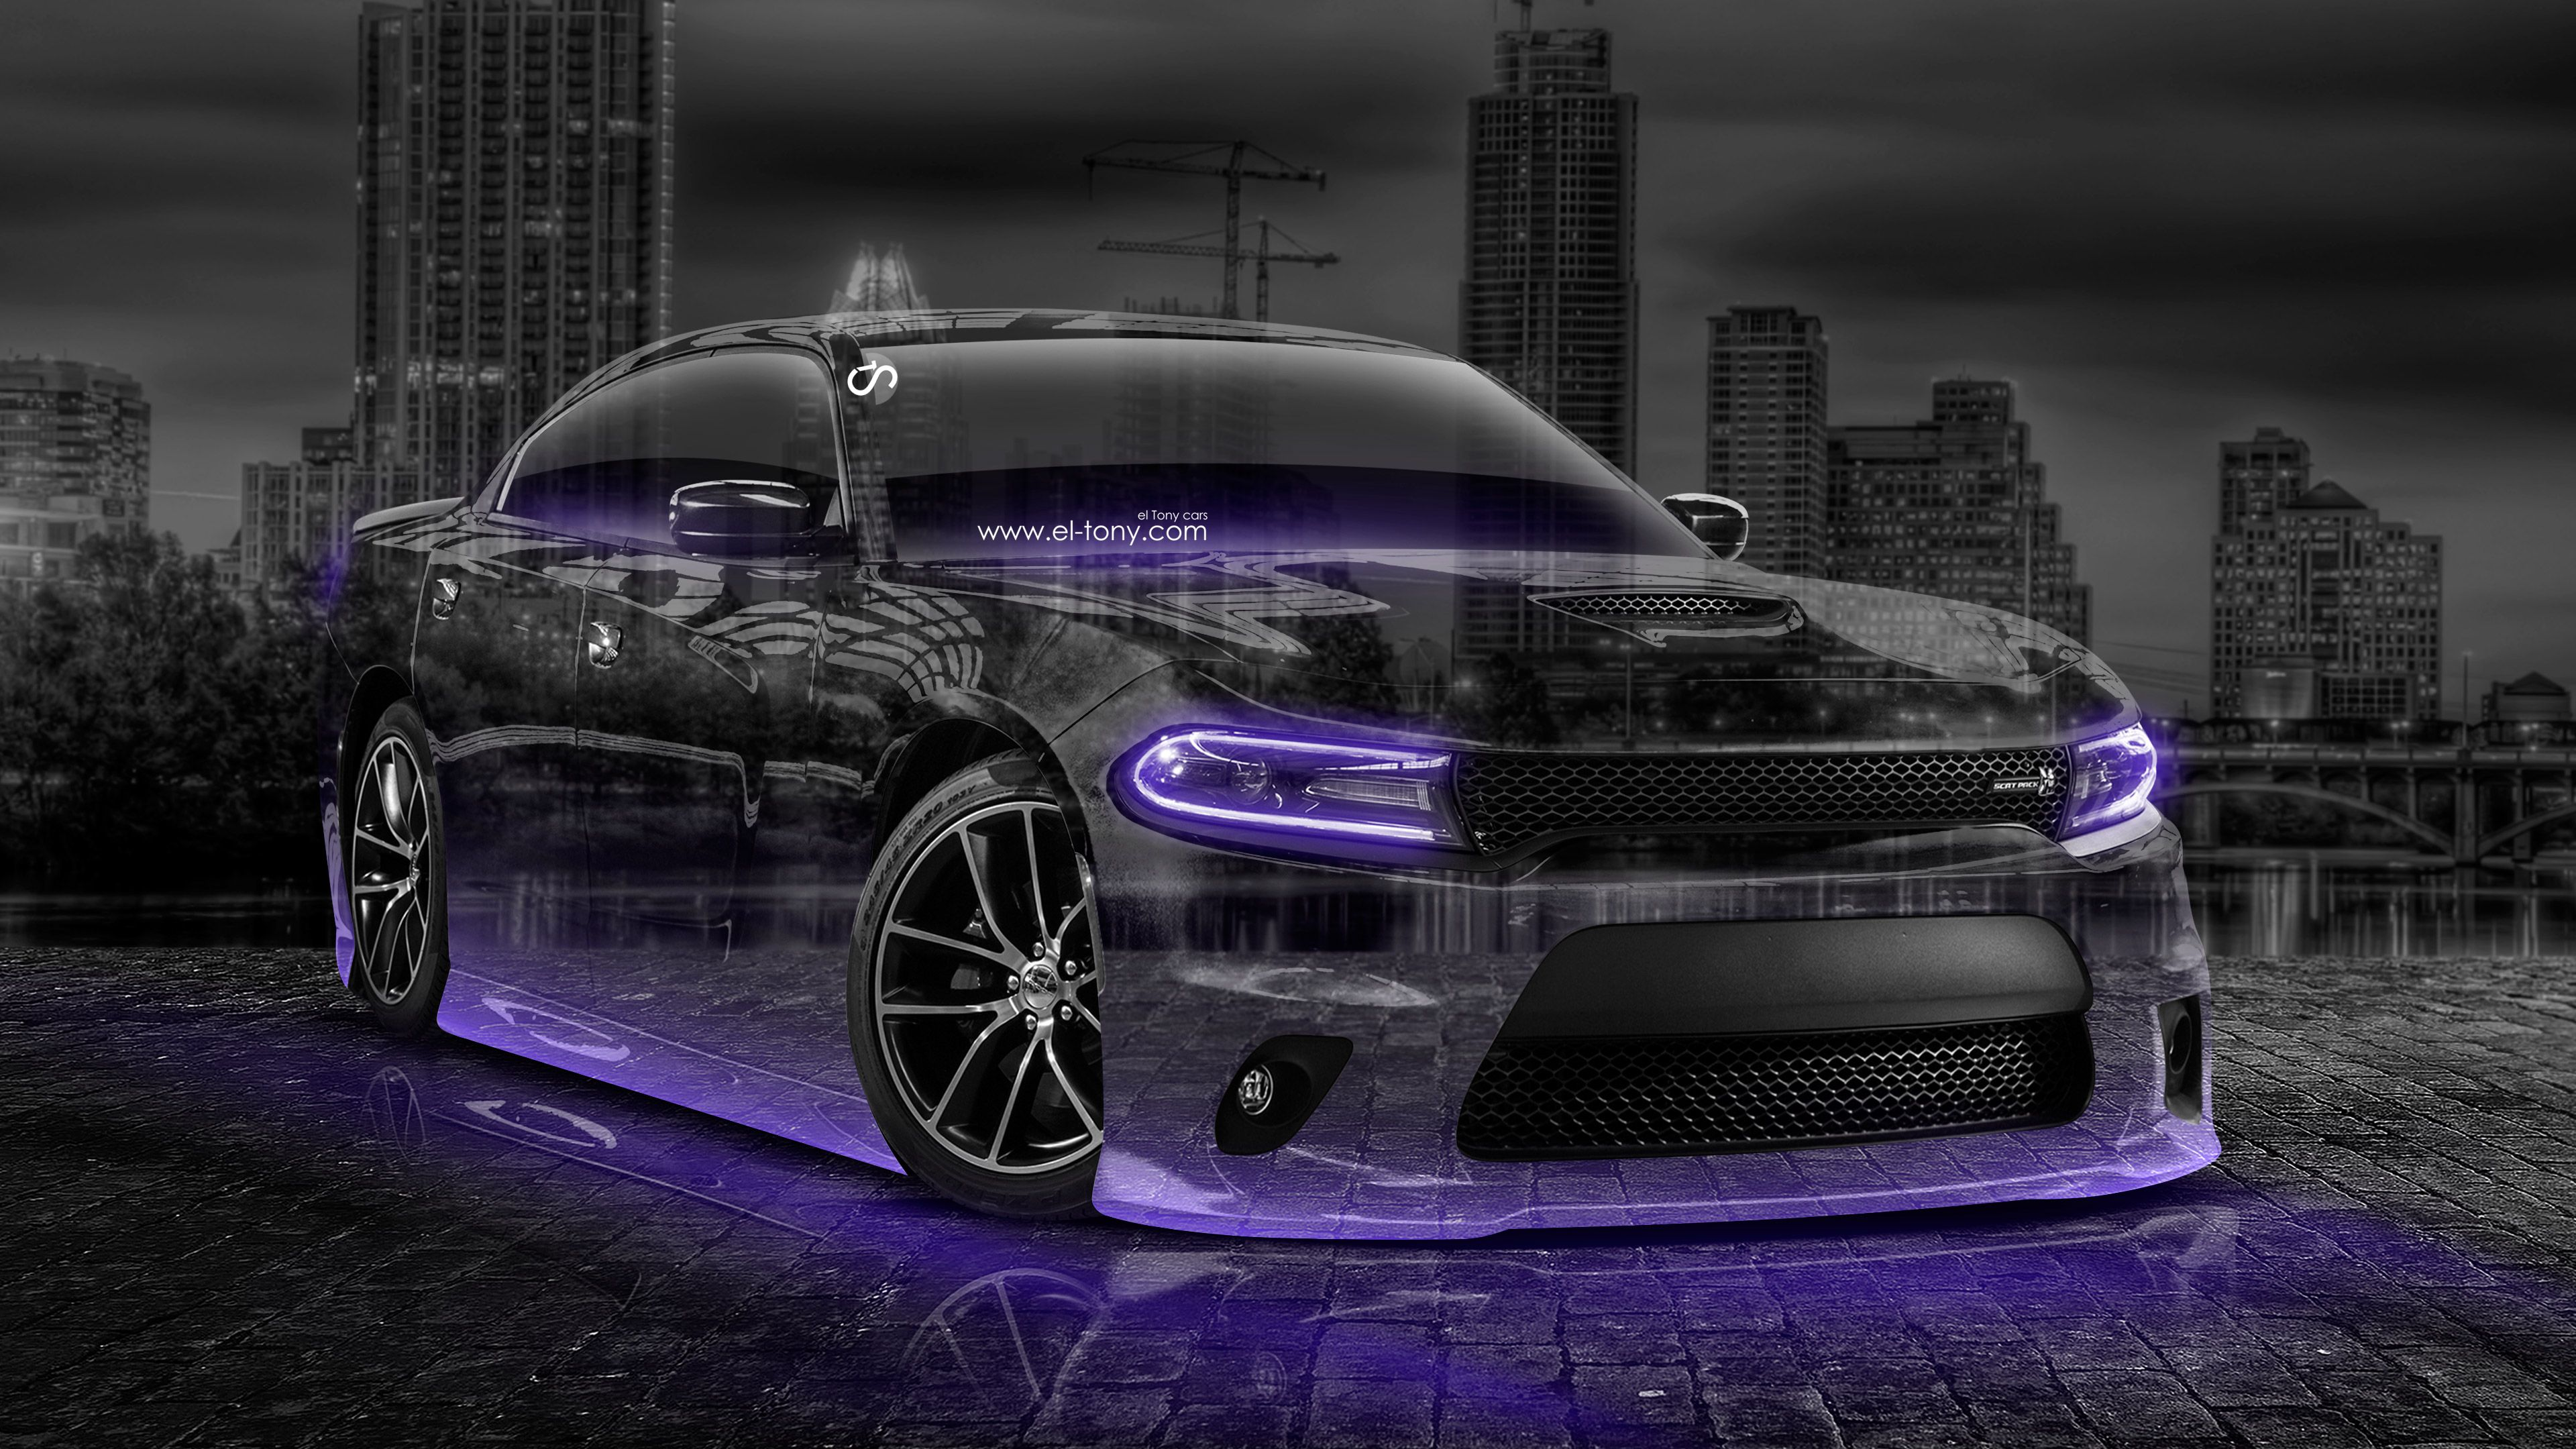 Gentil Dodge Charger RT Muscle Crystal City Car 2015